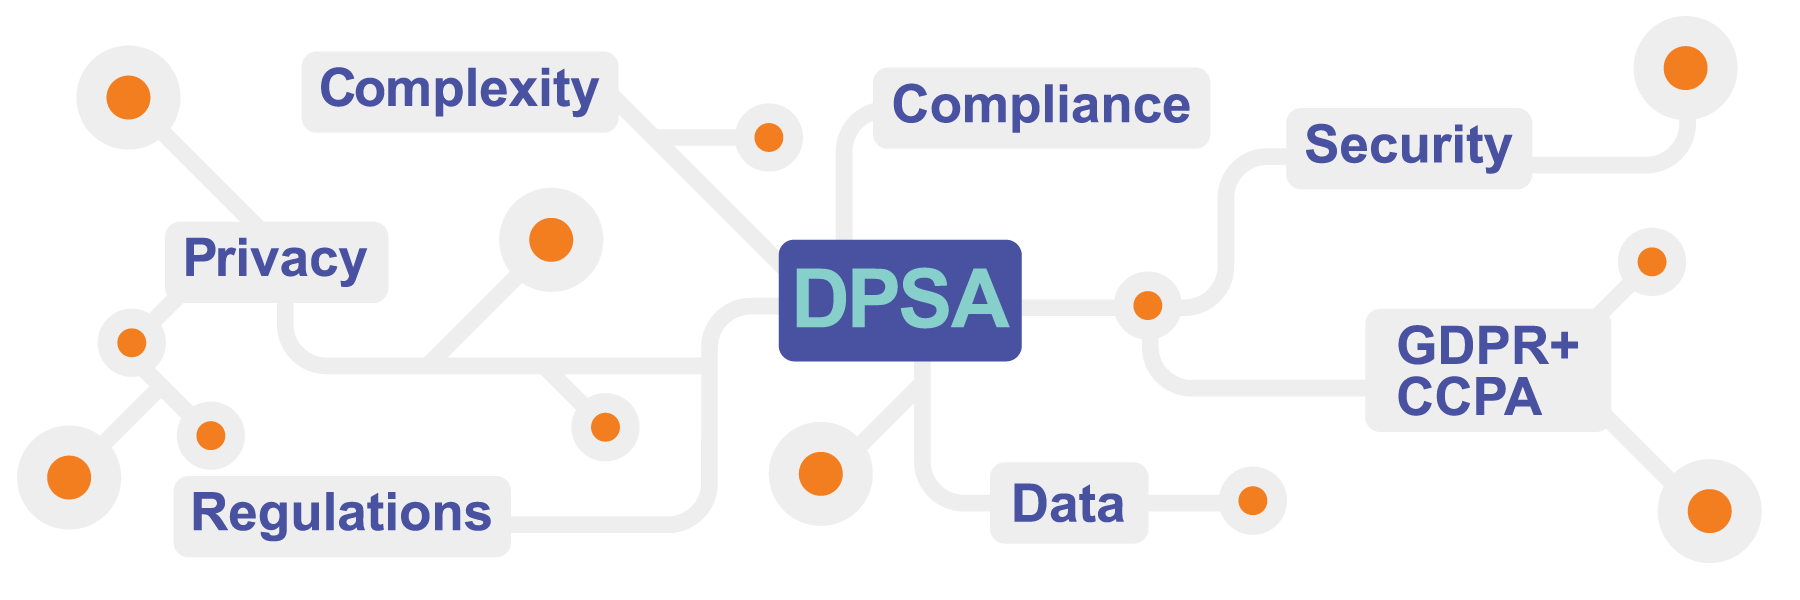 DPSA Complexity Privacy Regulations compliance data securty GDPR CCPA